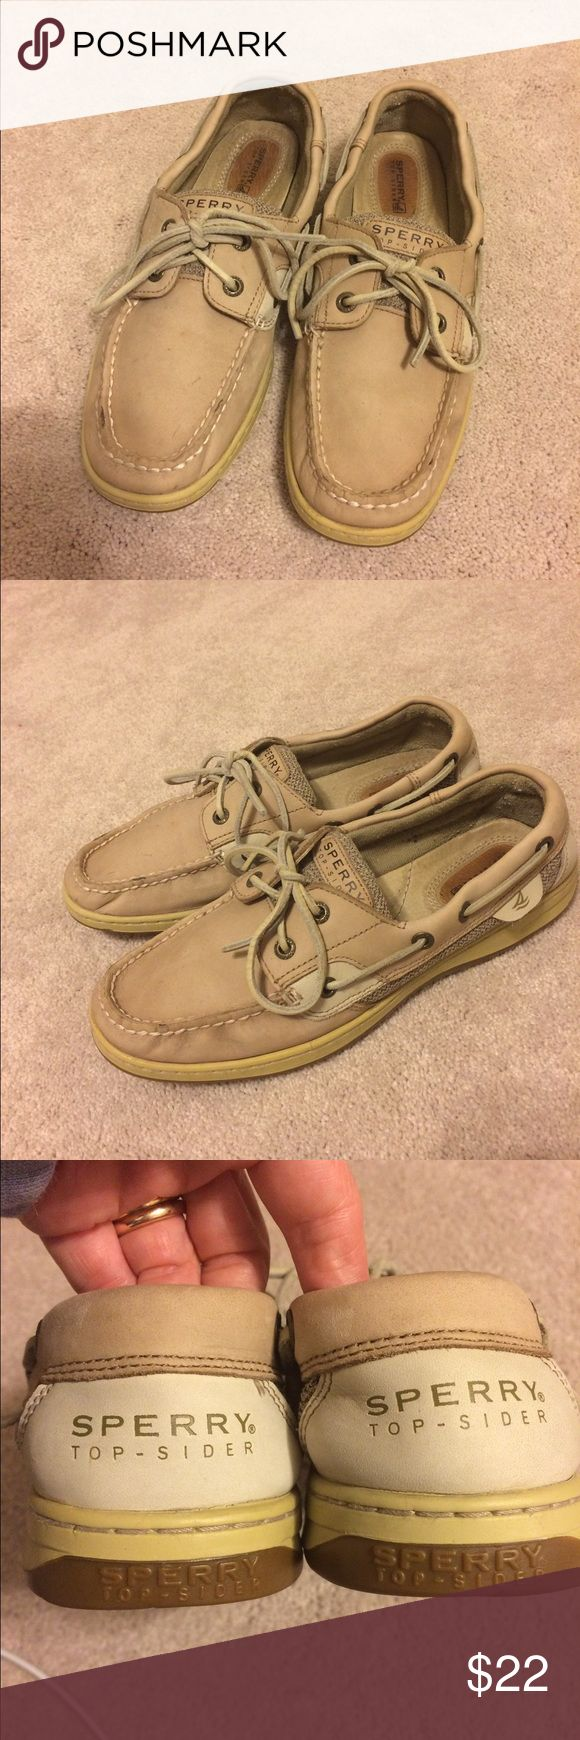 Women's Sperry Top-Siders sz. 8 1/2 A casual and comfy pair of women's Sperry Top-Siders is for sale. Their neutral colors will go with any outfit. They are in very good condition. Size 8 1/2. Feel free to ask questions if you have any. Thanks for looking! Sperry Shoes Flats & Loafers